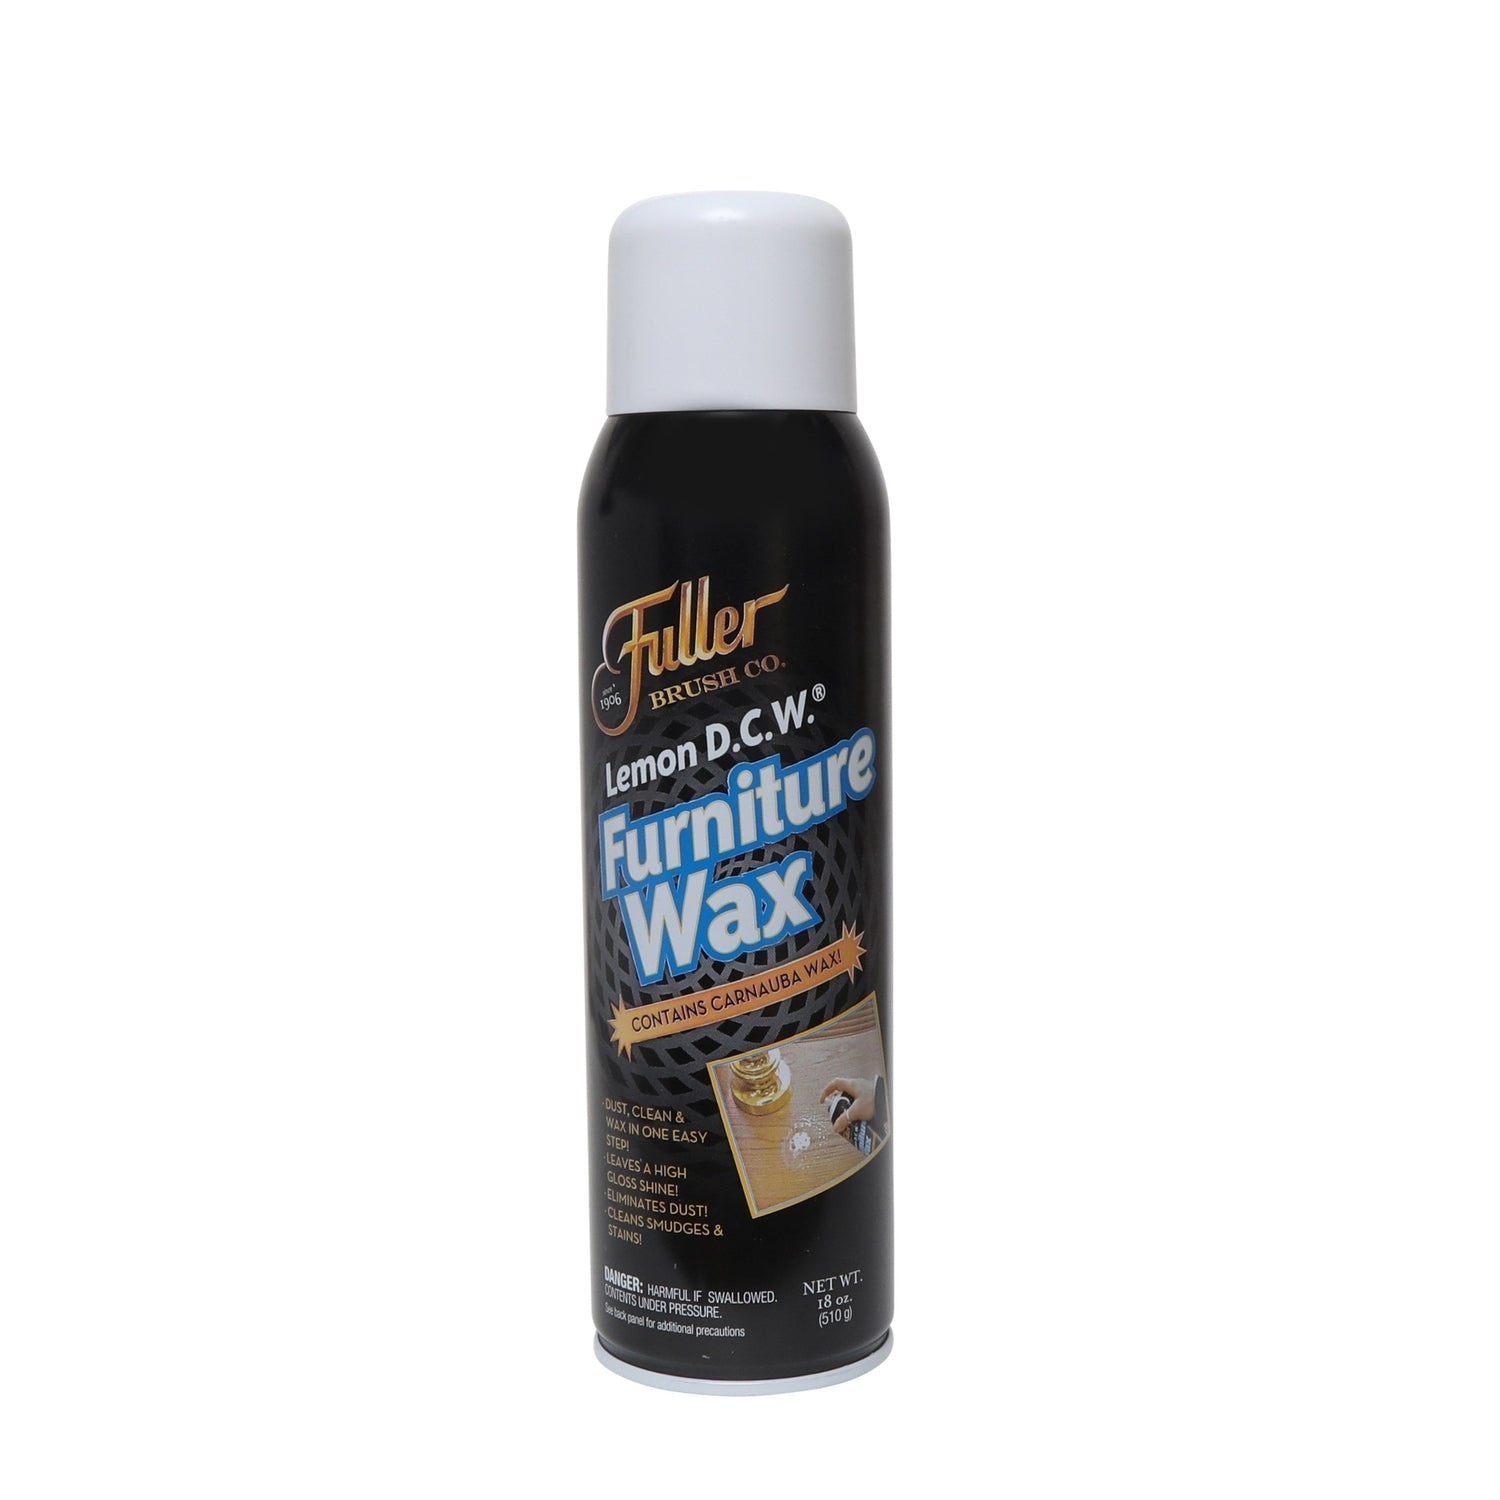 Lemon DCW Furniture Wax - Multi Surface Polishing Spray Cleaner-Cleaning Agents-Fuller Brush Company